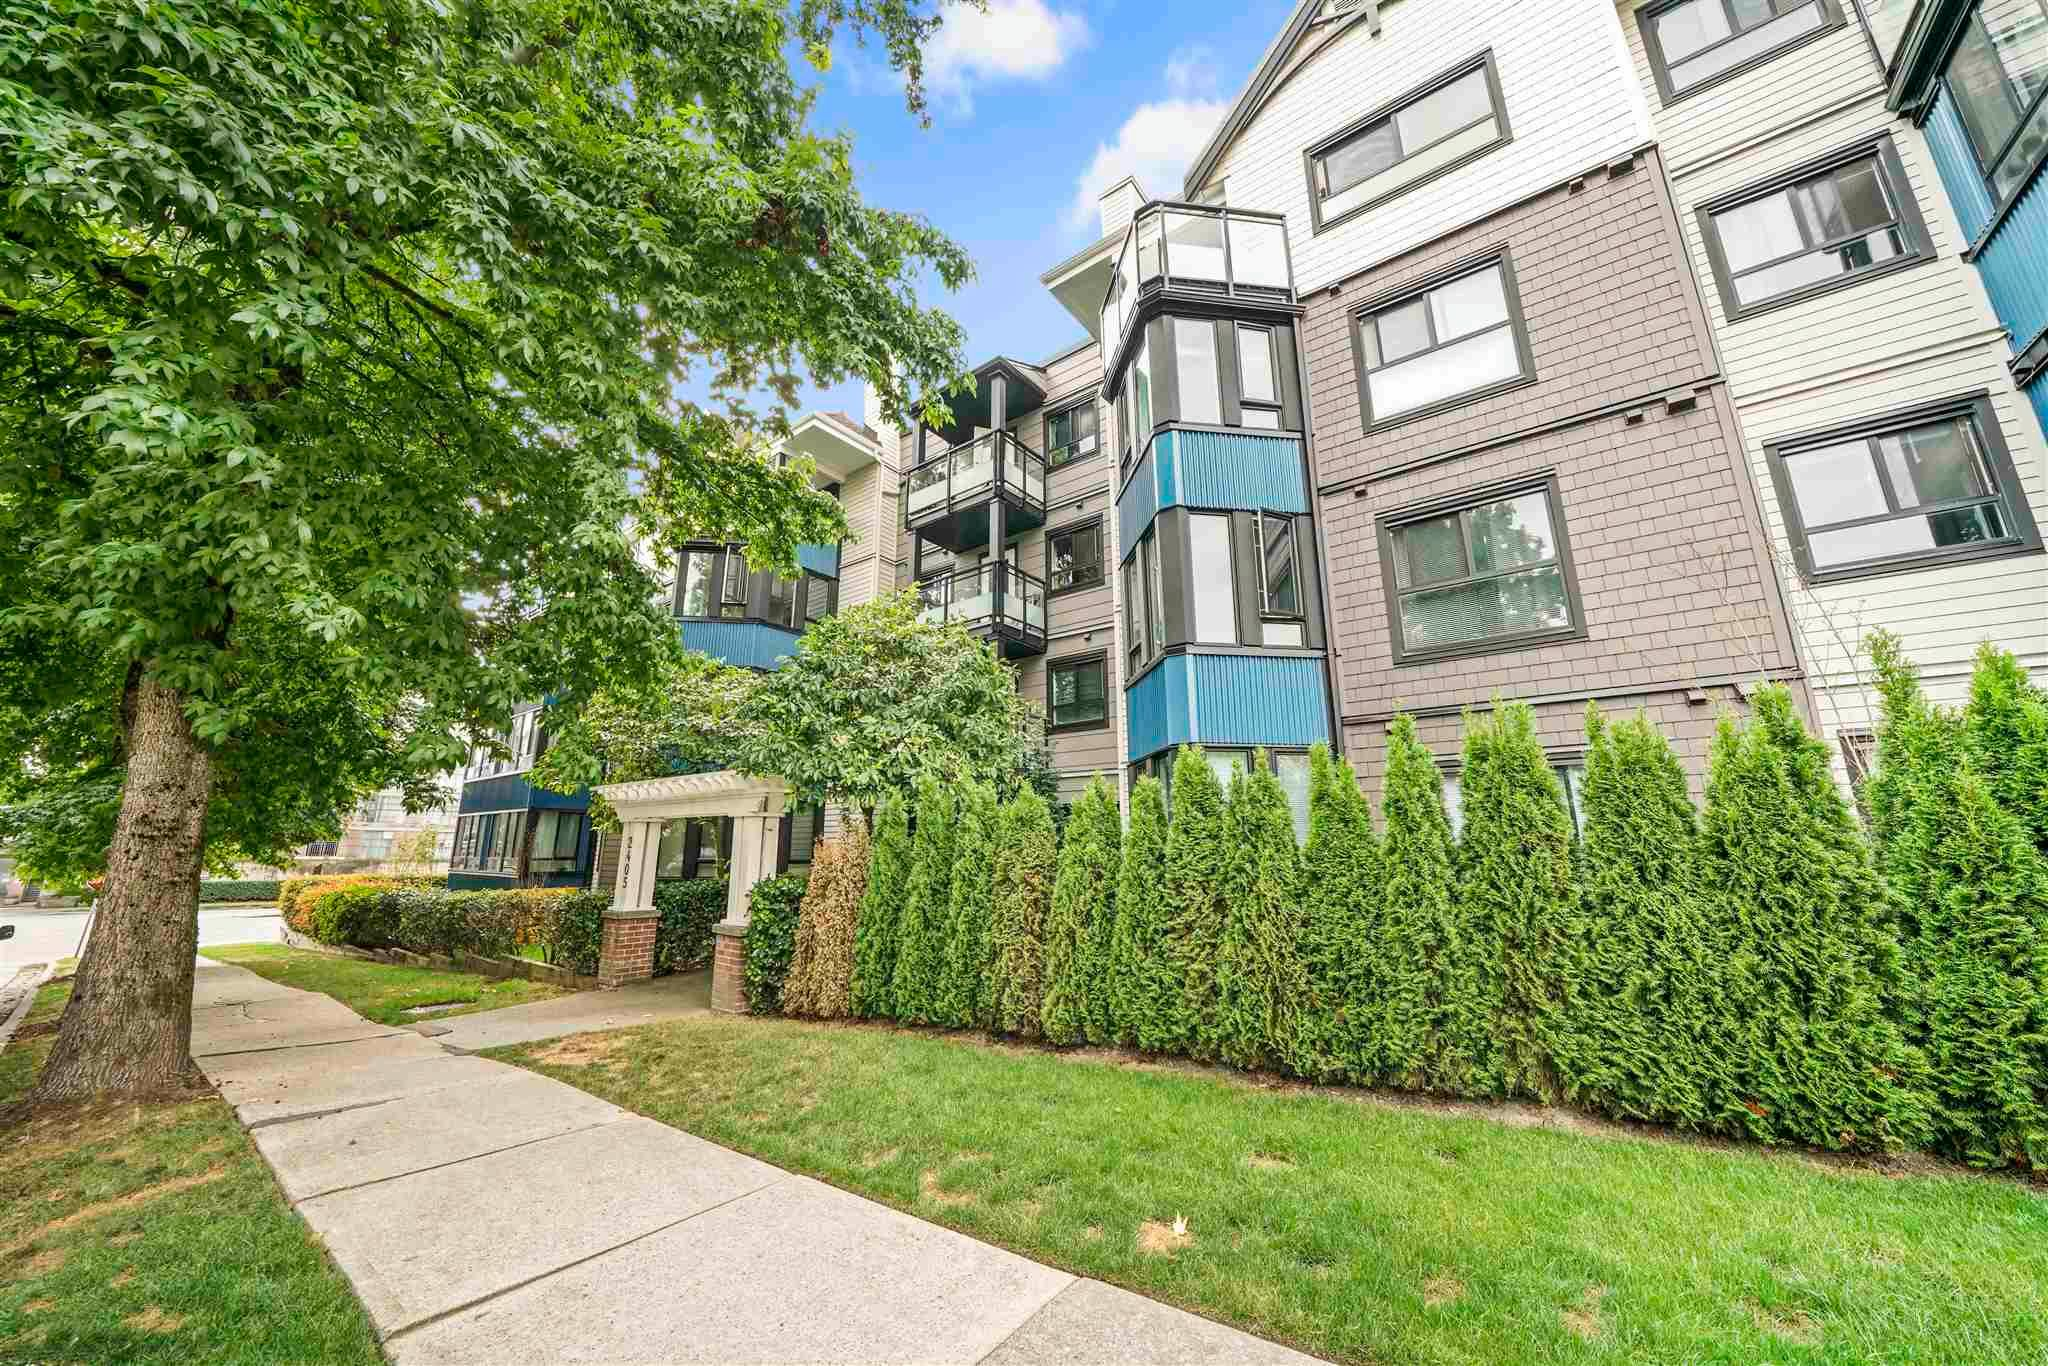 """Main Photo: 110 2405 KAMLOOPS Street in Vancouver: Renfrew VE Condo for sale in """"8th Avenue Garden Apartments"""" (Vancouver East)  : MLS®# R2615866"""